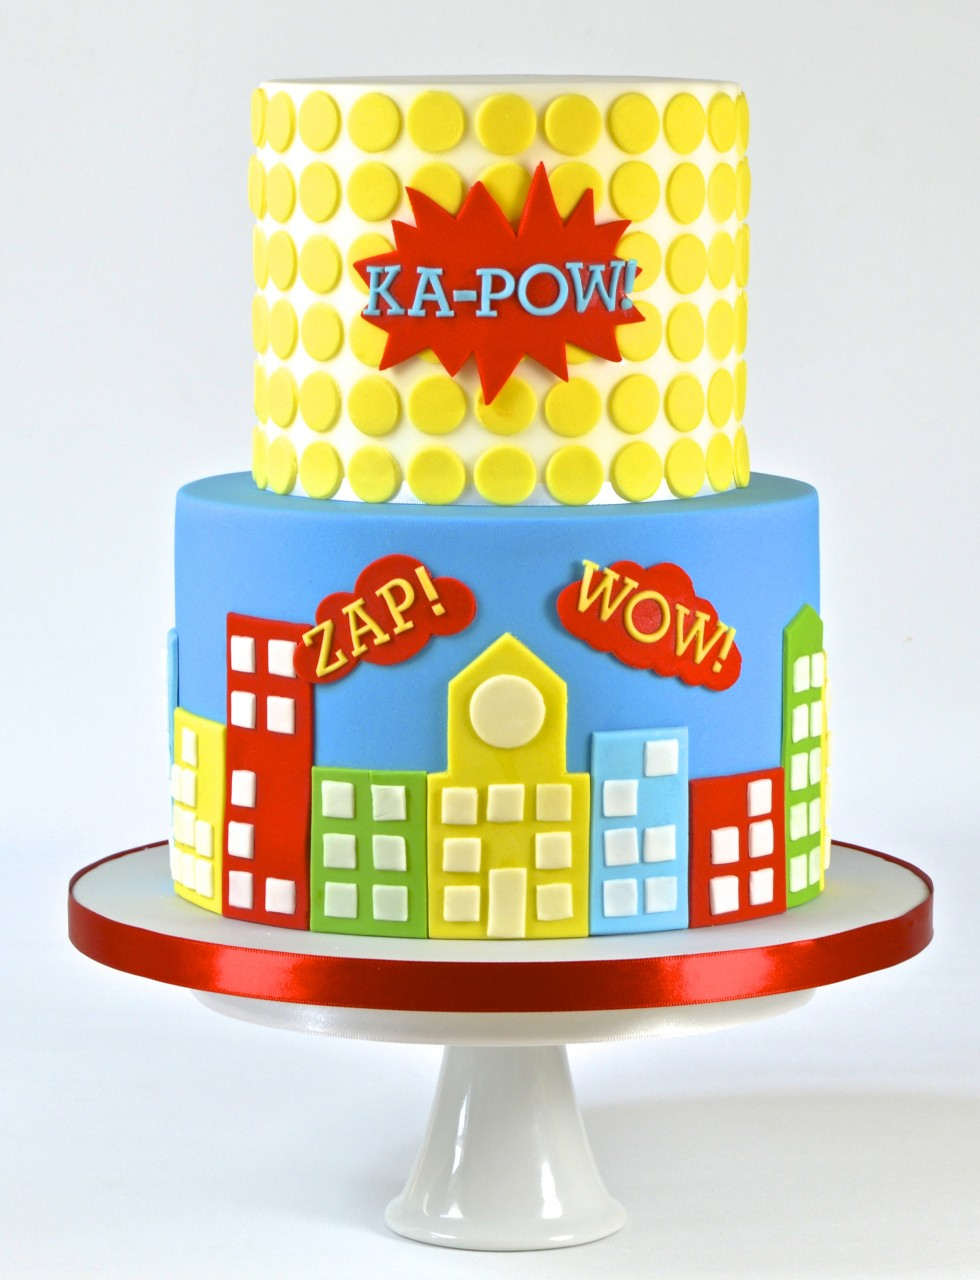 Cake Decorating Solutions Edible Images : Cutter - FMM - WOW Shape Cutter - Cake Decorating Solutions